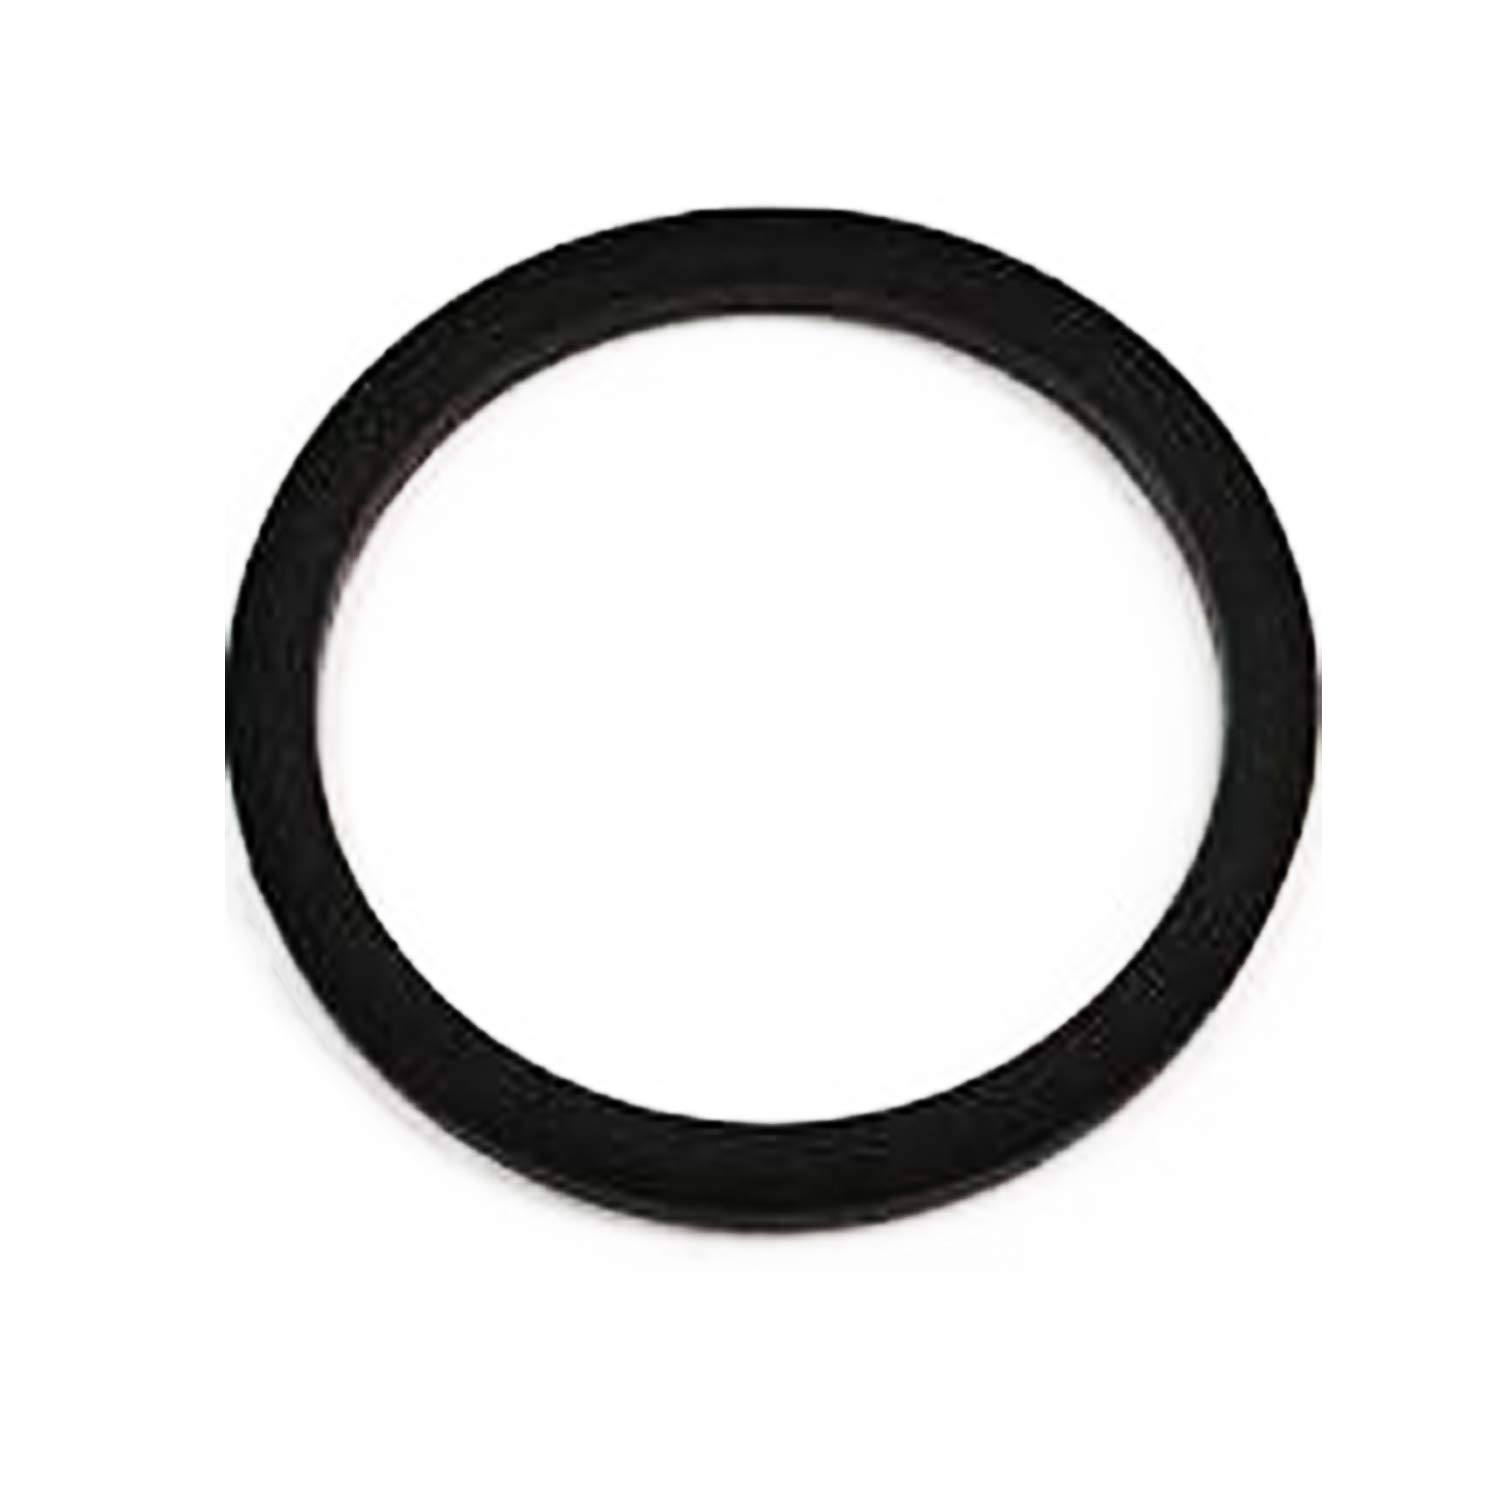 Genuine Polaris Part Number 5812123 - GASKET for Polaris ATV / Motorcycle / Snowmobile/ or Watercraft